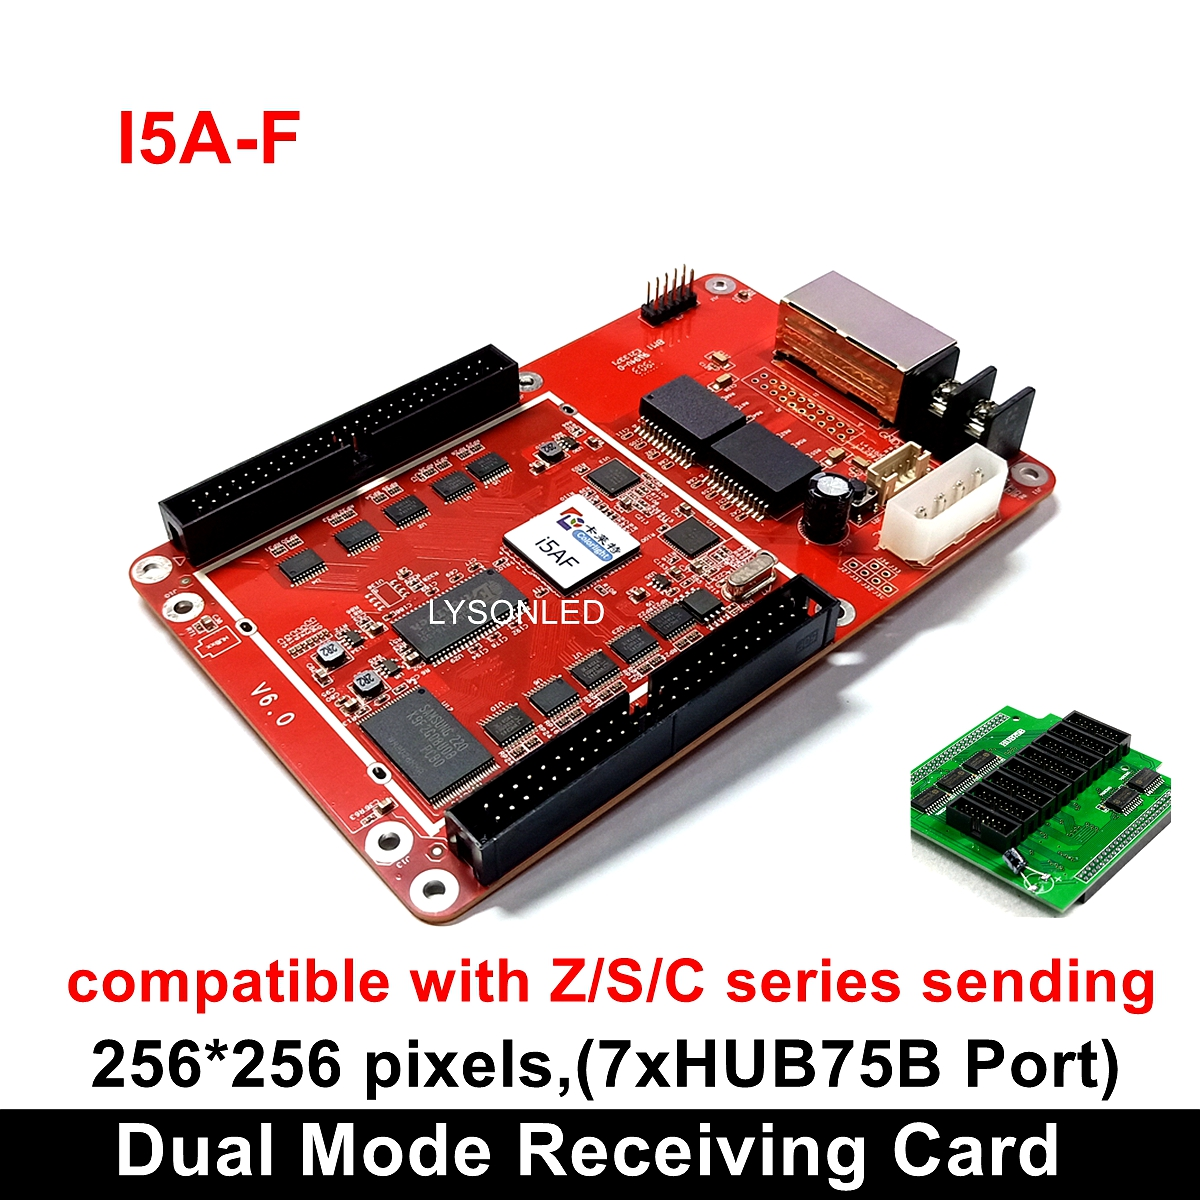 Colorlight I5A-F Full Color Dual Mode Control Card With HUB75B Adapter, Synchronous And Asynchronous Small RGB LED Video Card